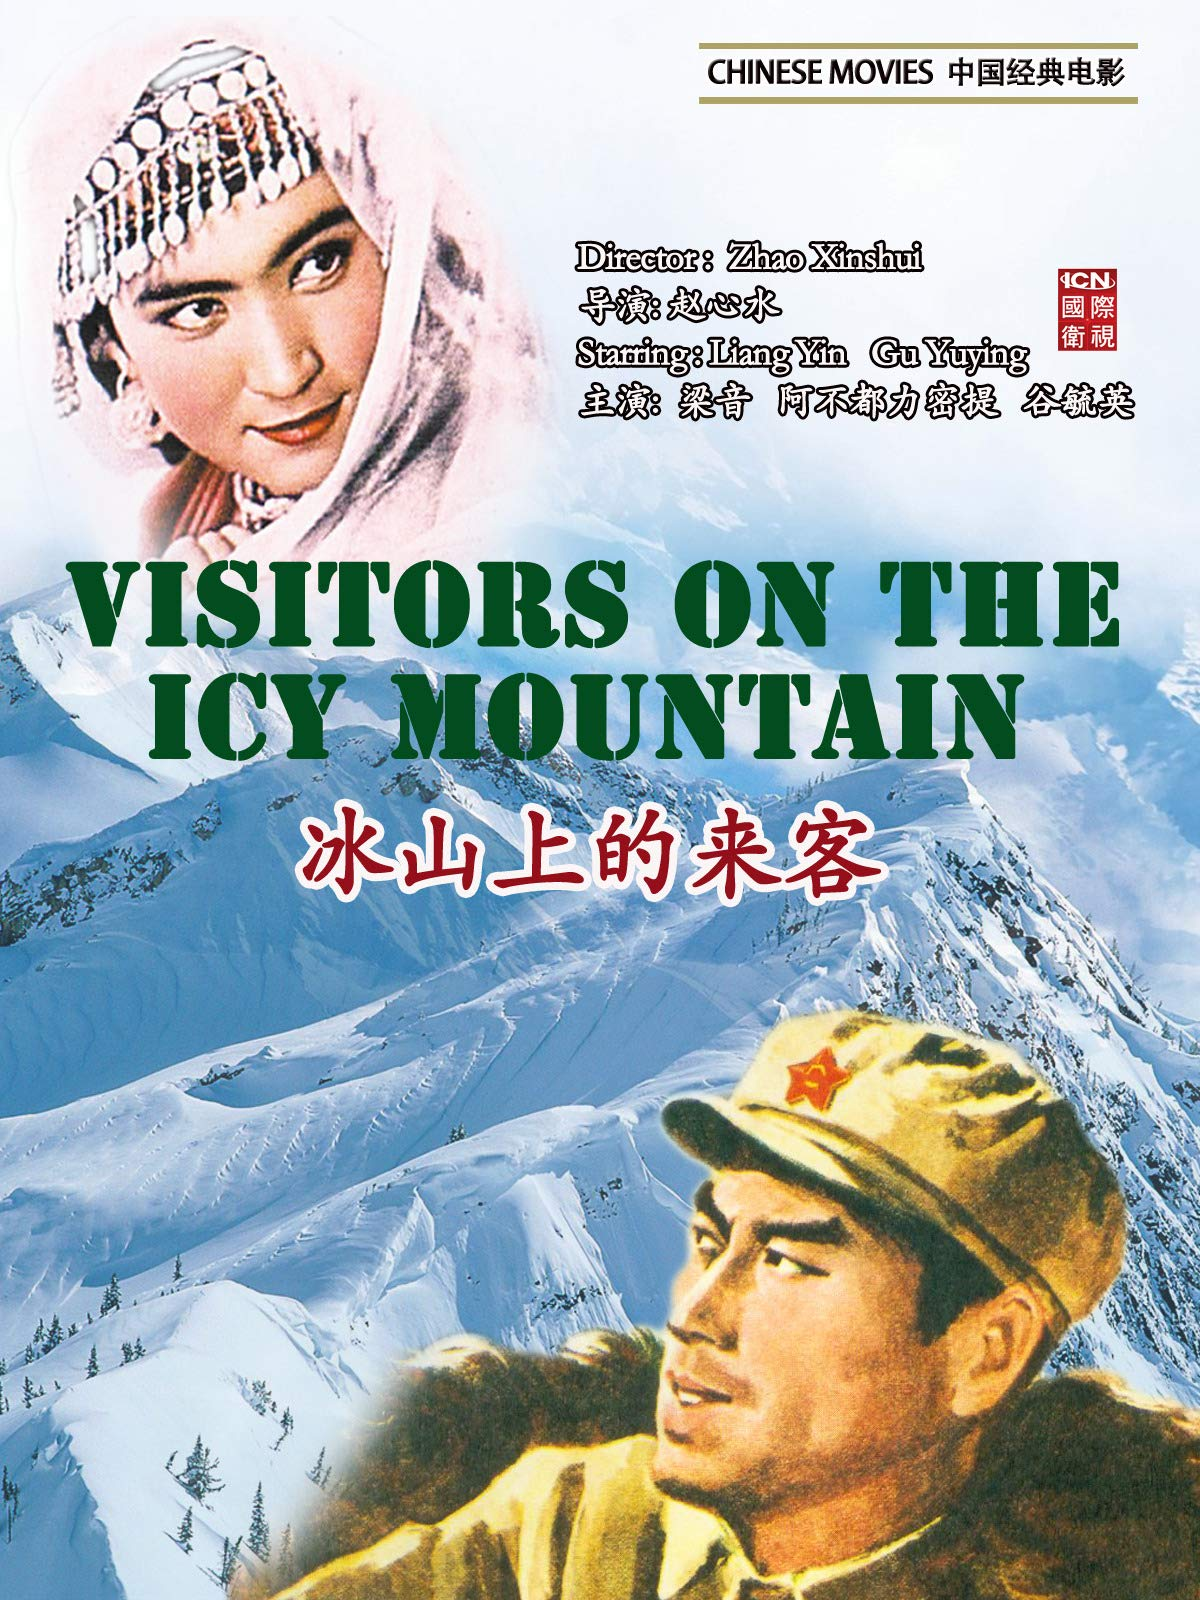 Chinese Movies-Visitors on the Icy Mountain